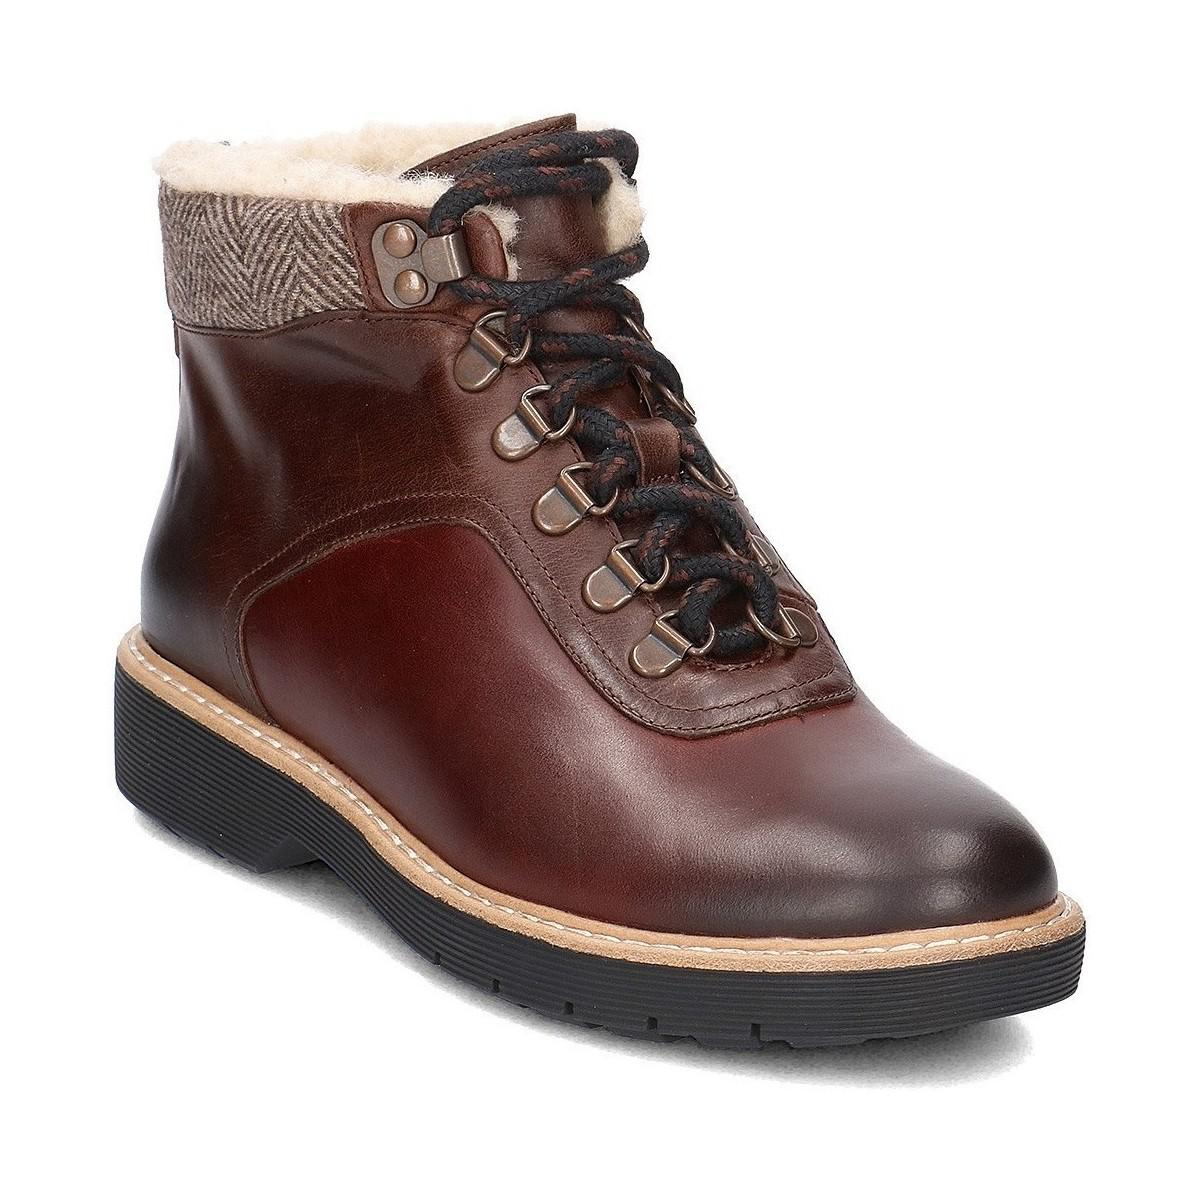 Wide Range Of For Sale Sale Pictures Clarks WITCOMBE ROCK women's Mid Boots in Yp5M8EPs6